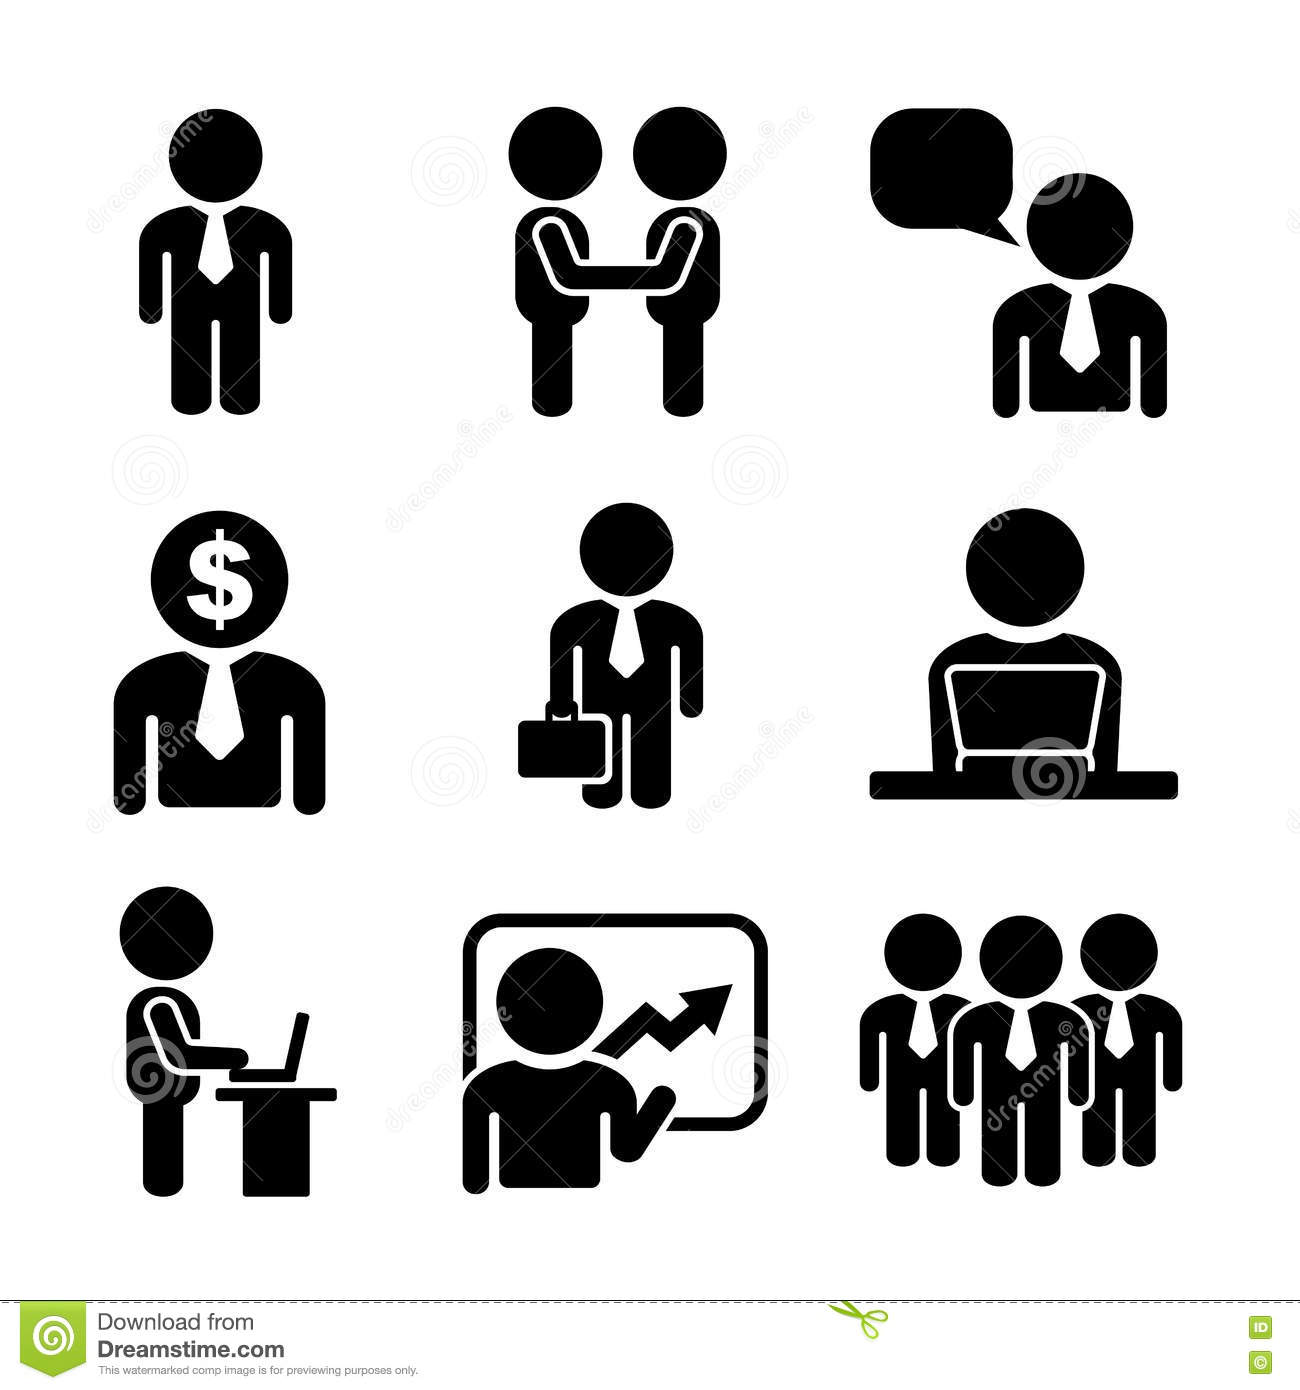 map plan with Stock Illustration Business Office People Icon Set White Background Vector Image55803172 on Stock Illustration Crosshair White Background Gun Image55344575 in addition Royalty Free Stock Photo Plug Socket Image20870825 additionally Stock Illustration Business Office People Icon Set White Background Vector Image55803172 as well Royalty Free Stock Image Tatoo Design Image3086426 furthermore Stock Illustration Hand Lettering Alphabet Modern Calligraphy Vector Image65193211.